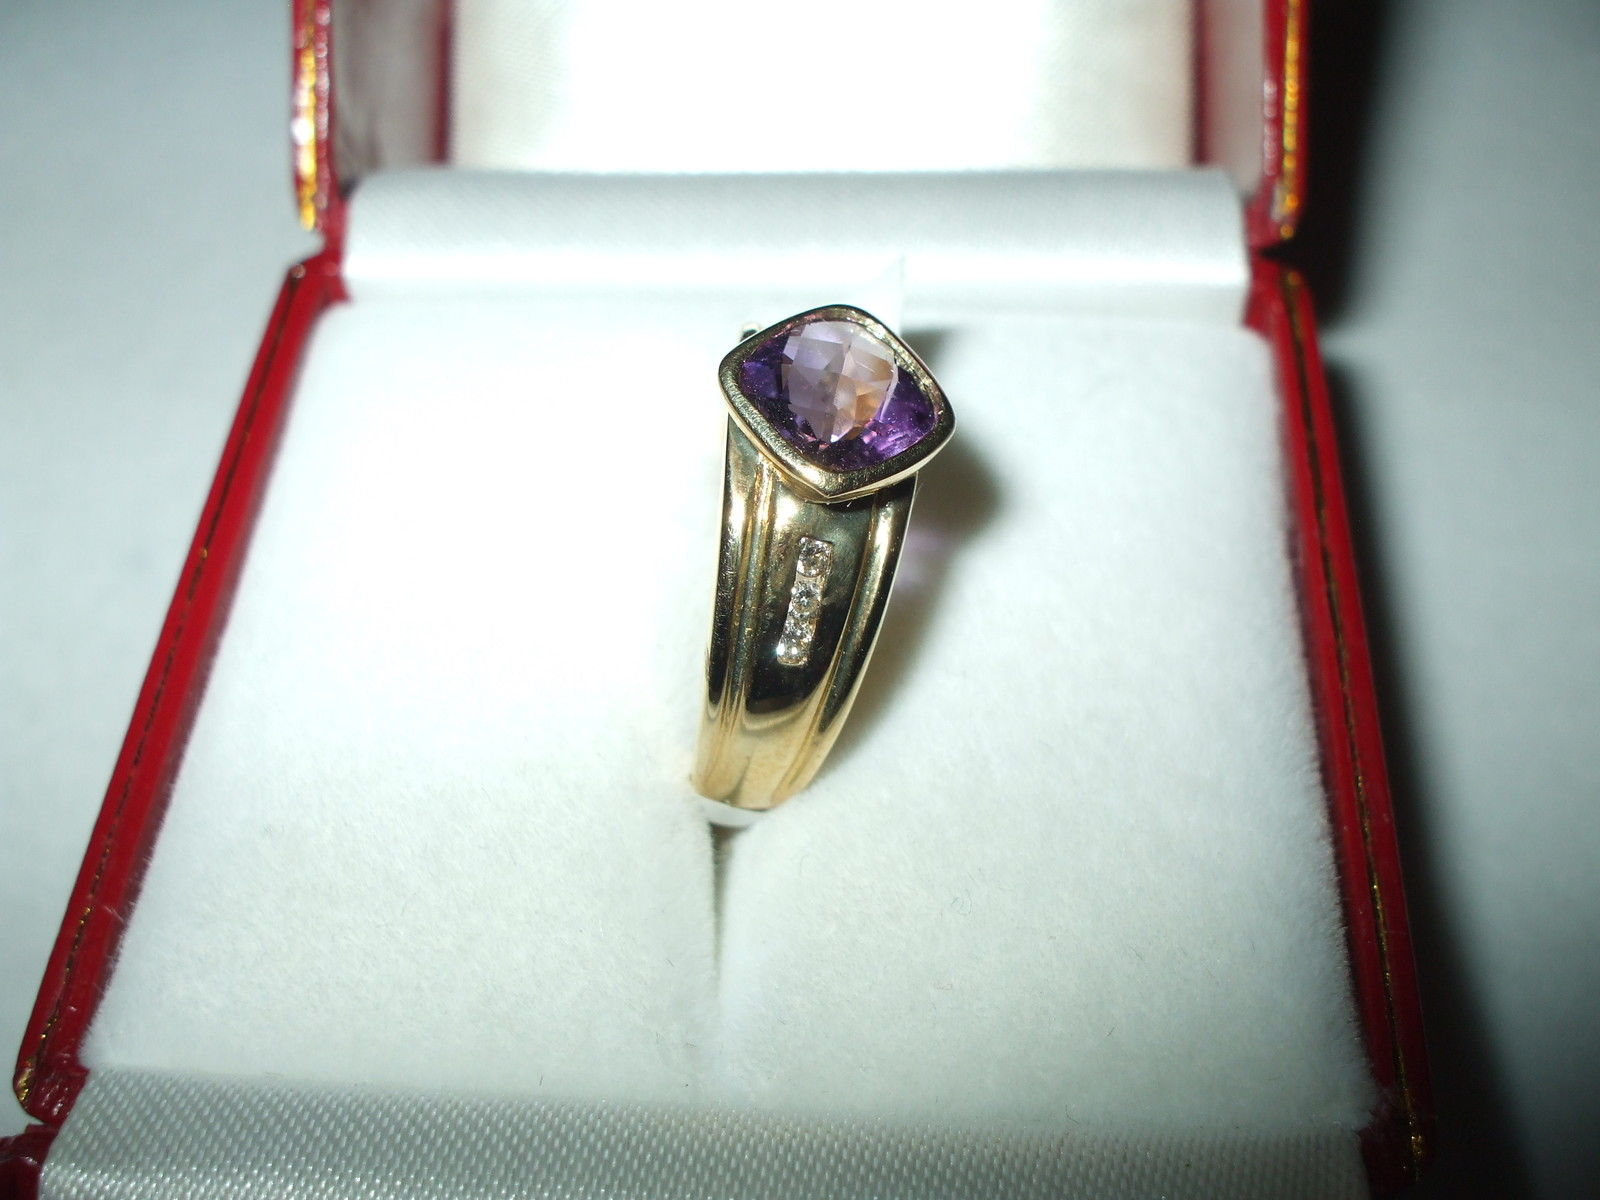 Genuine 1.31 ct Amethyst and Diamond Ring 14K yellow gold NWT $740